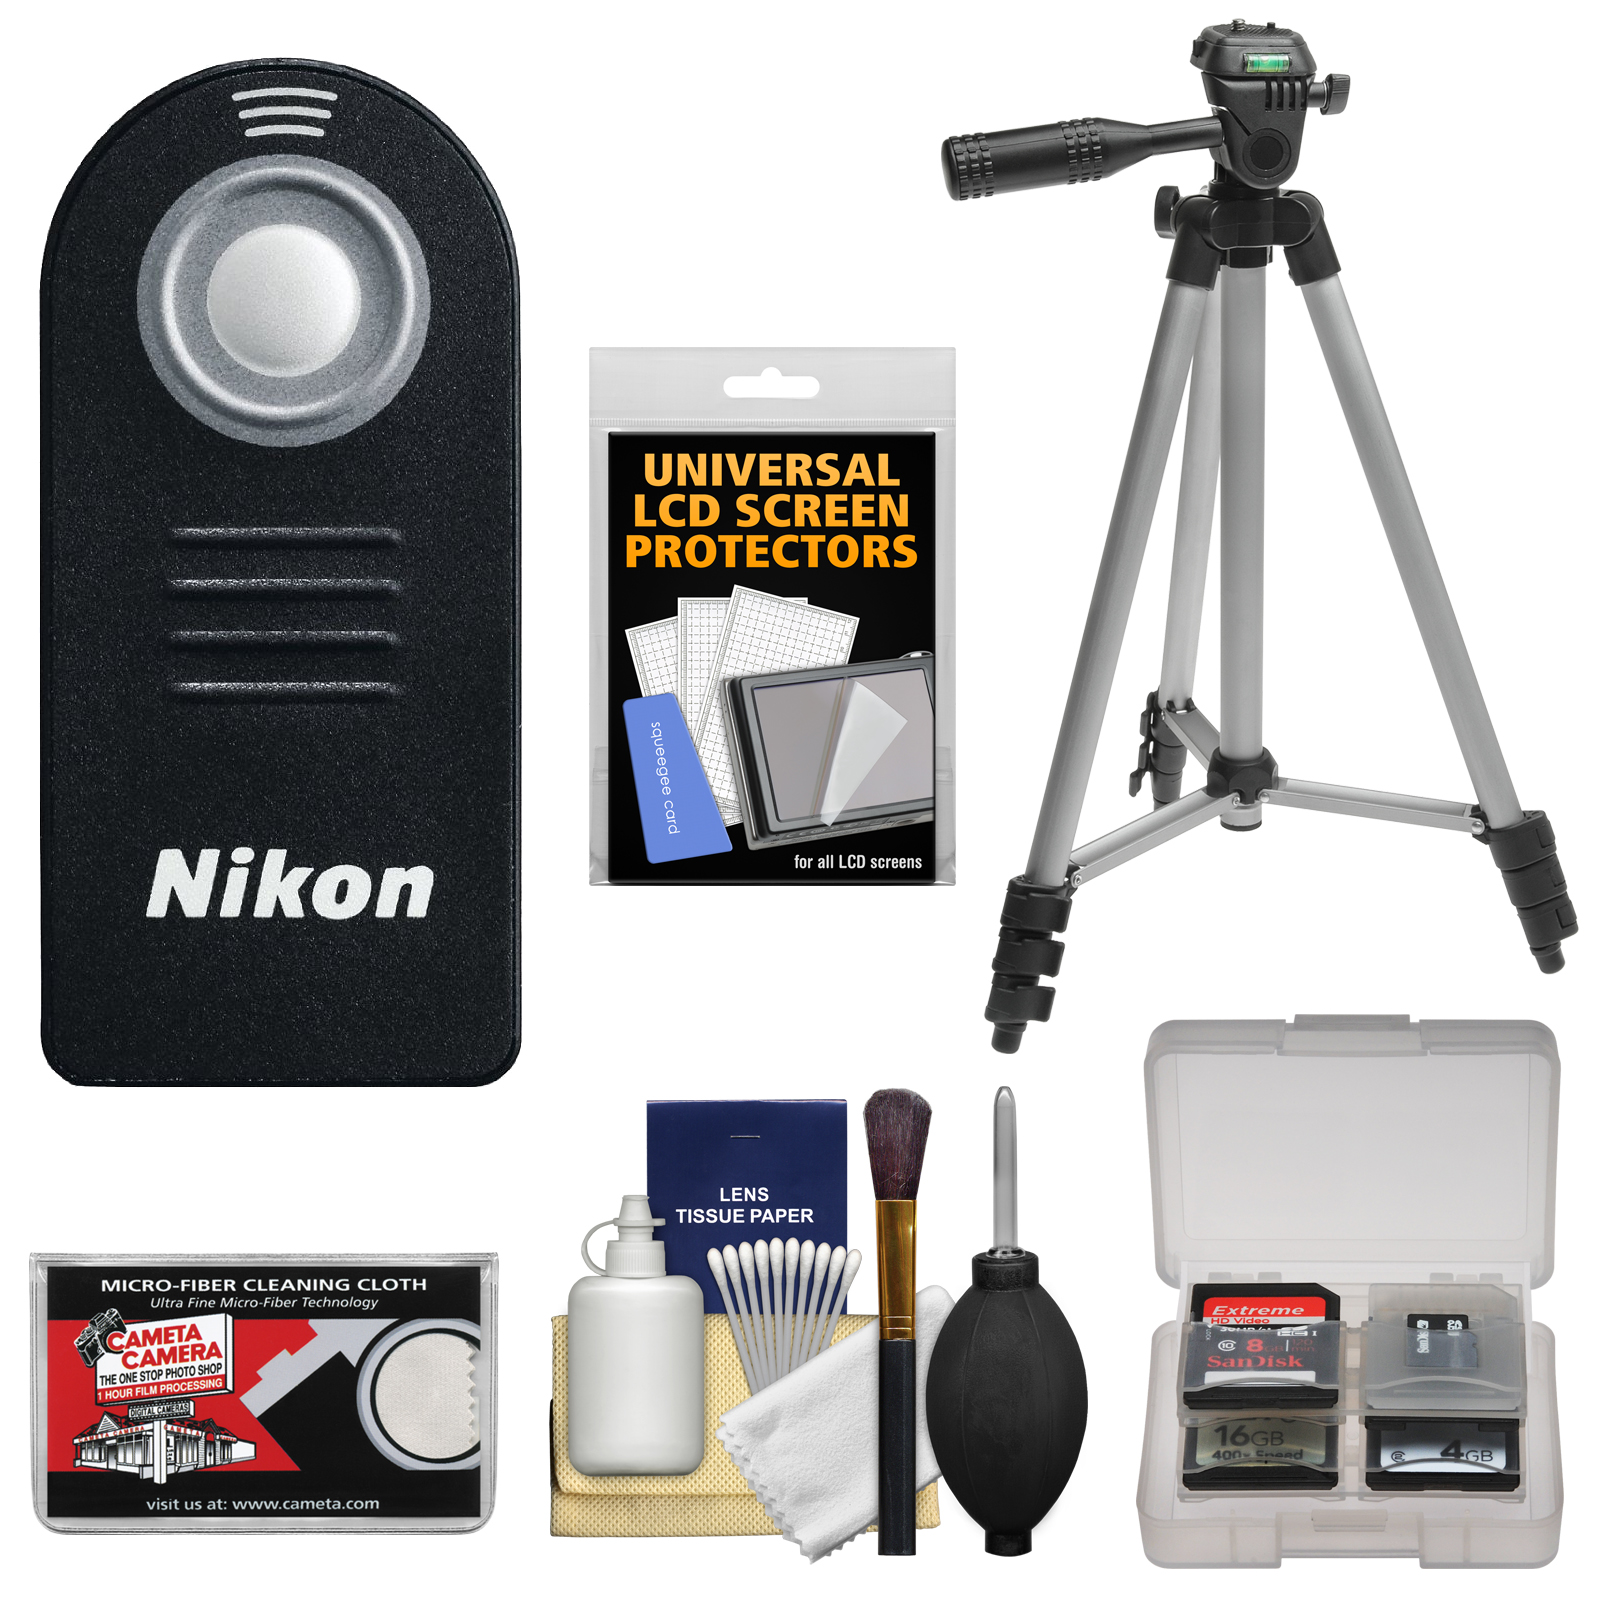 Nikon ML-L3 Wireless Shutter Release Remote Control + Tripod + Cleaning Kit for Nikon 1 V2, V3, J3, J4, J5 Interchangeable Lens Digital Cameras